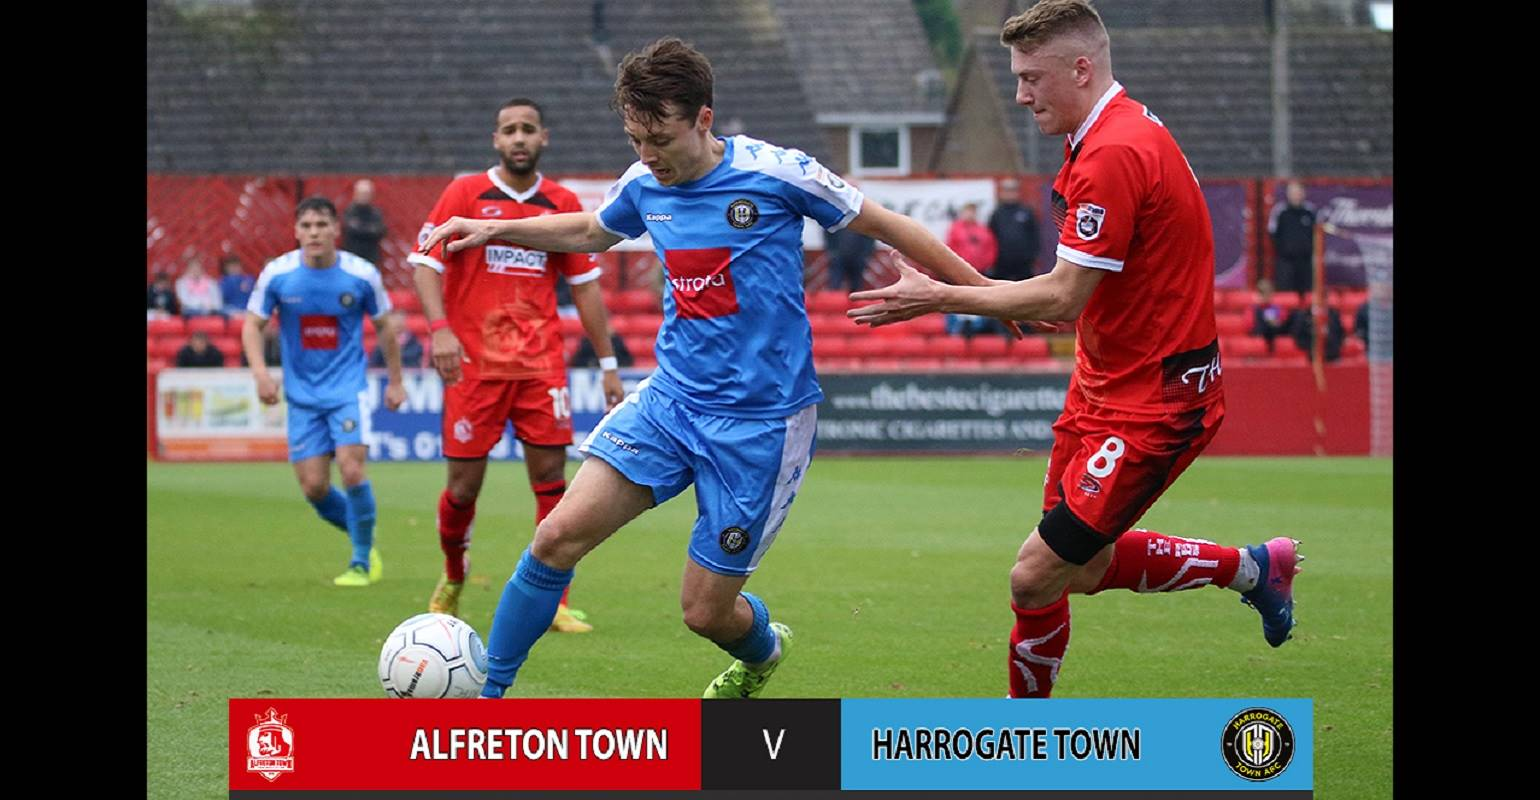 HIGHLIGHTS | Alfreton 1 Town 2